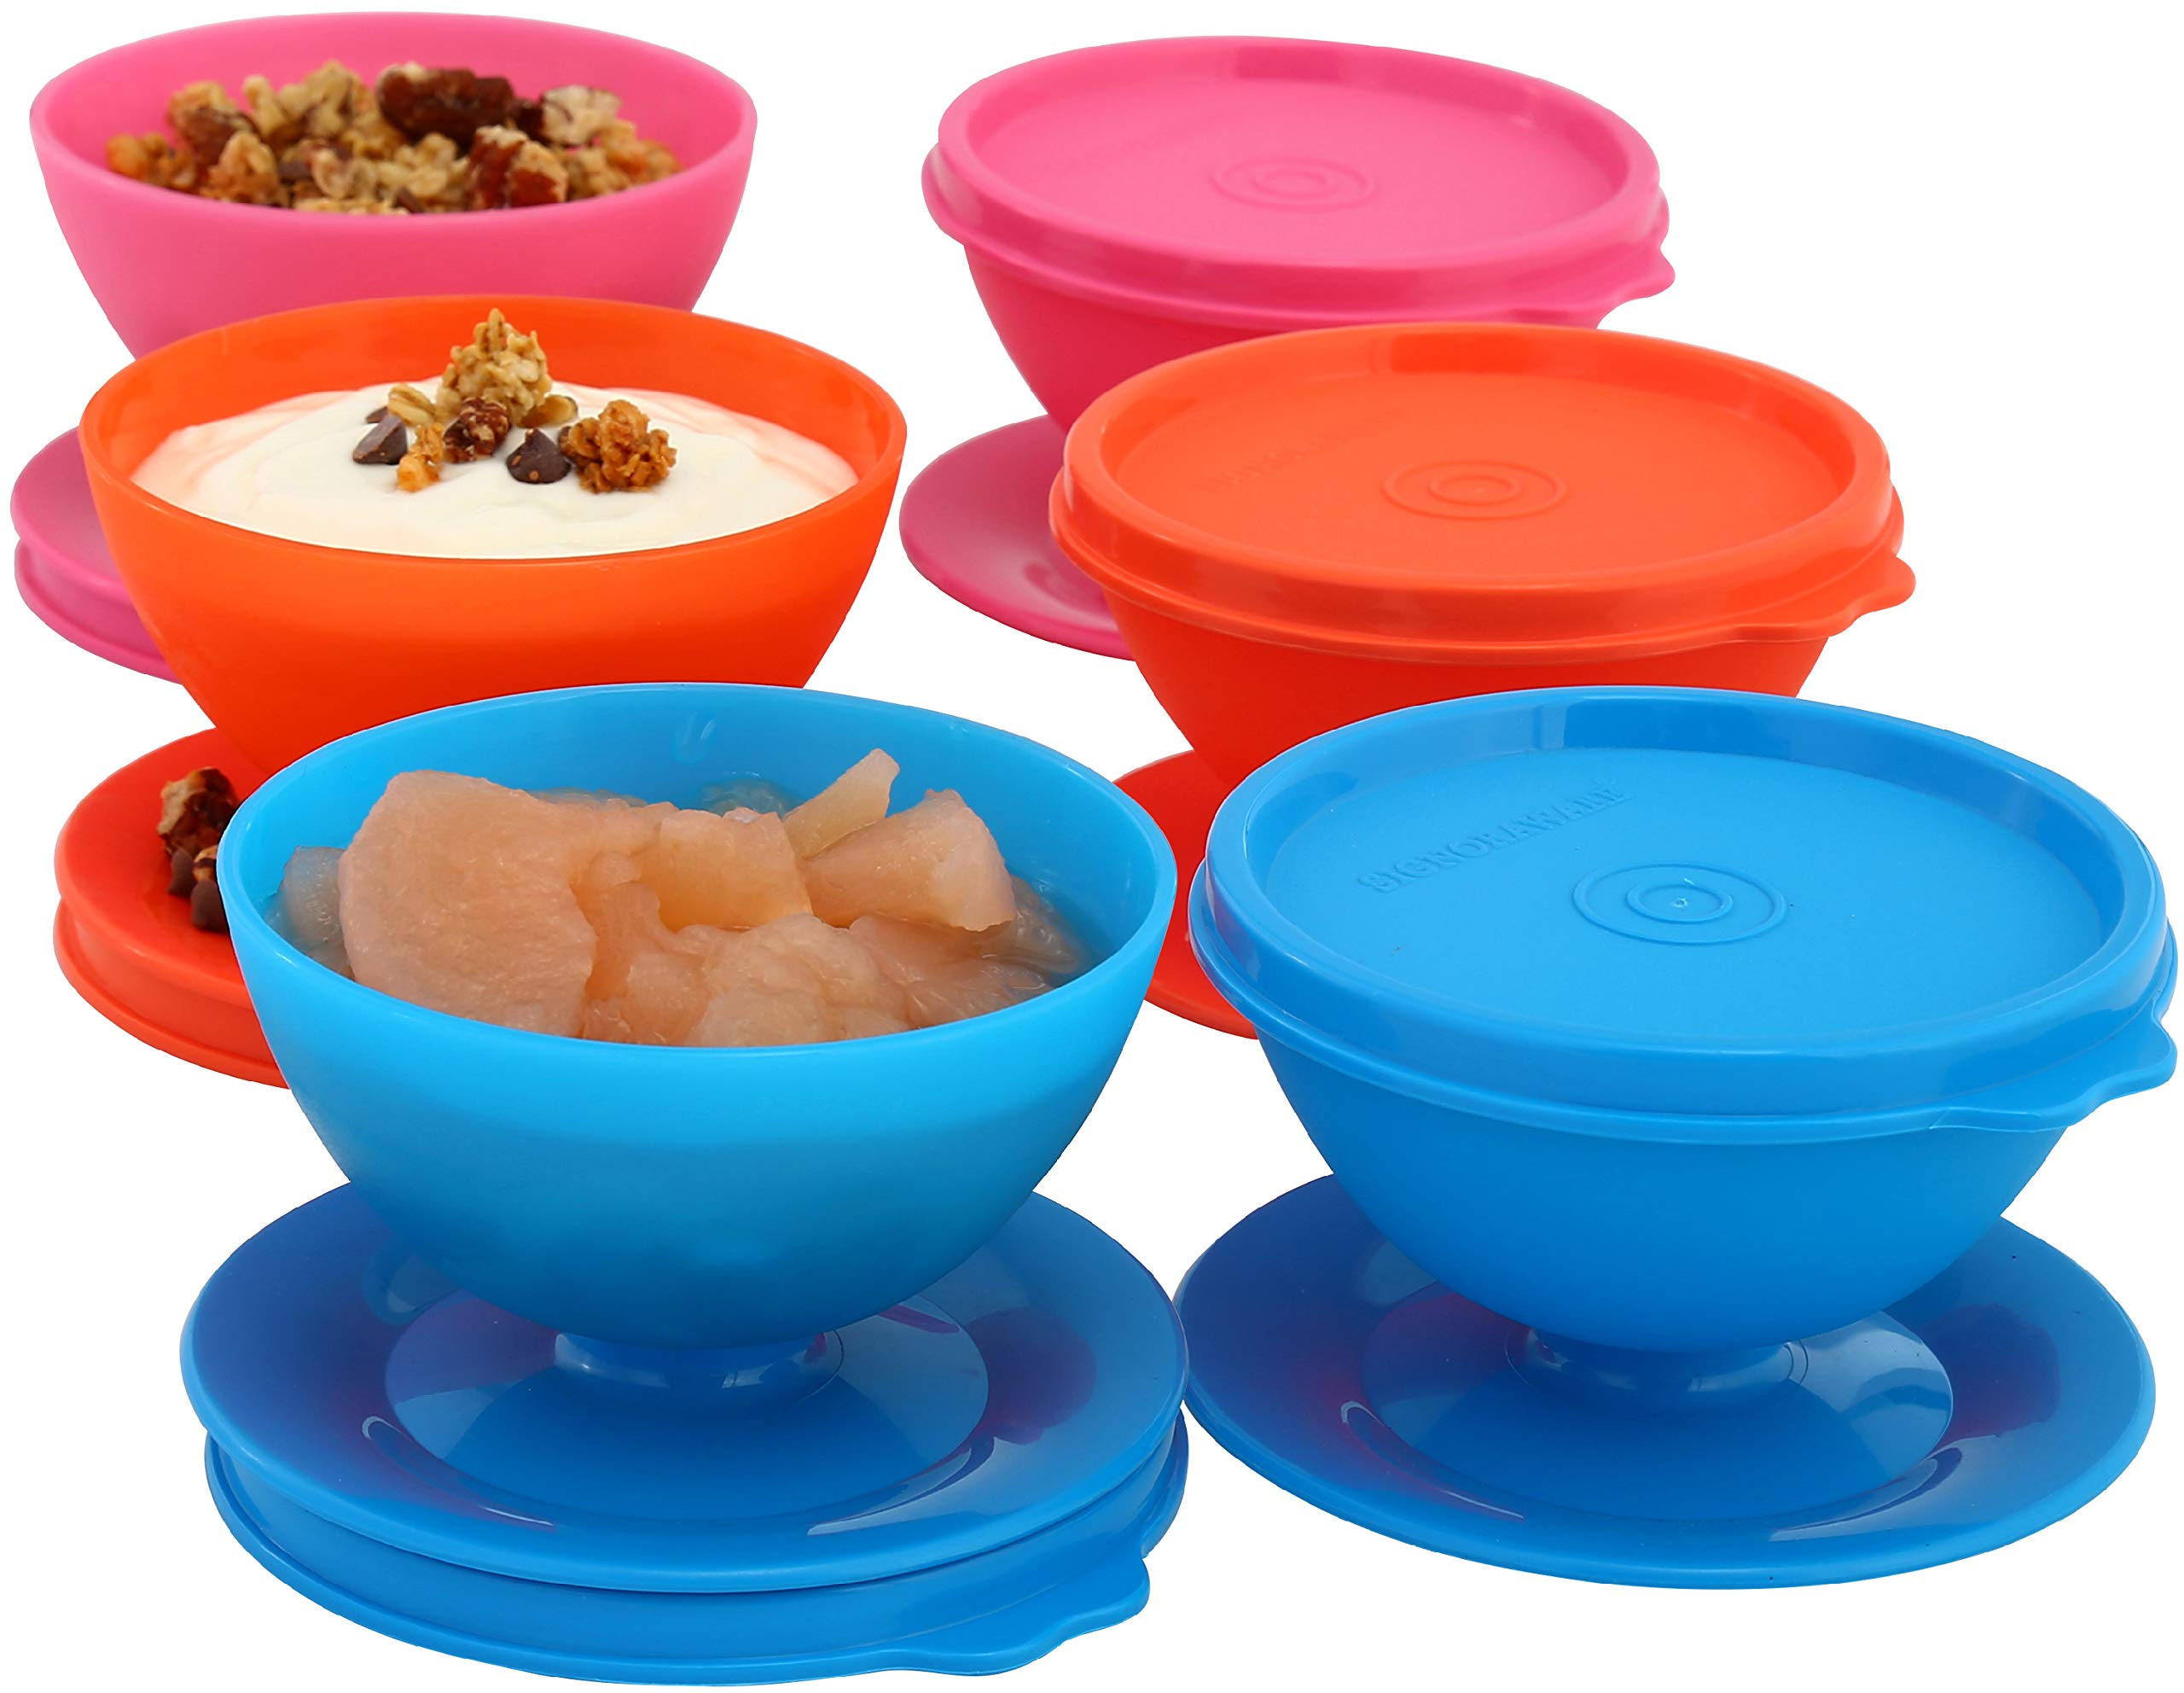 Dessert Ice Cream Cups Bowls with Lids 5 oz - Set of 6 for Desserts,Snacks, Pudding,Treats, Appetizers, portion cups mini Reusable, Plastic Containers for Parties Picnics Freezer Safe multi colors